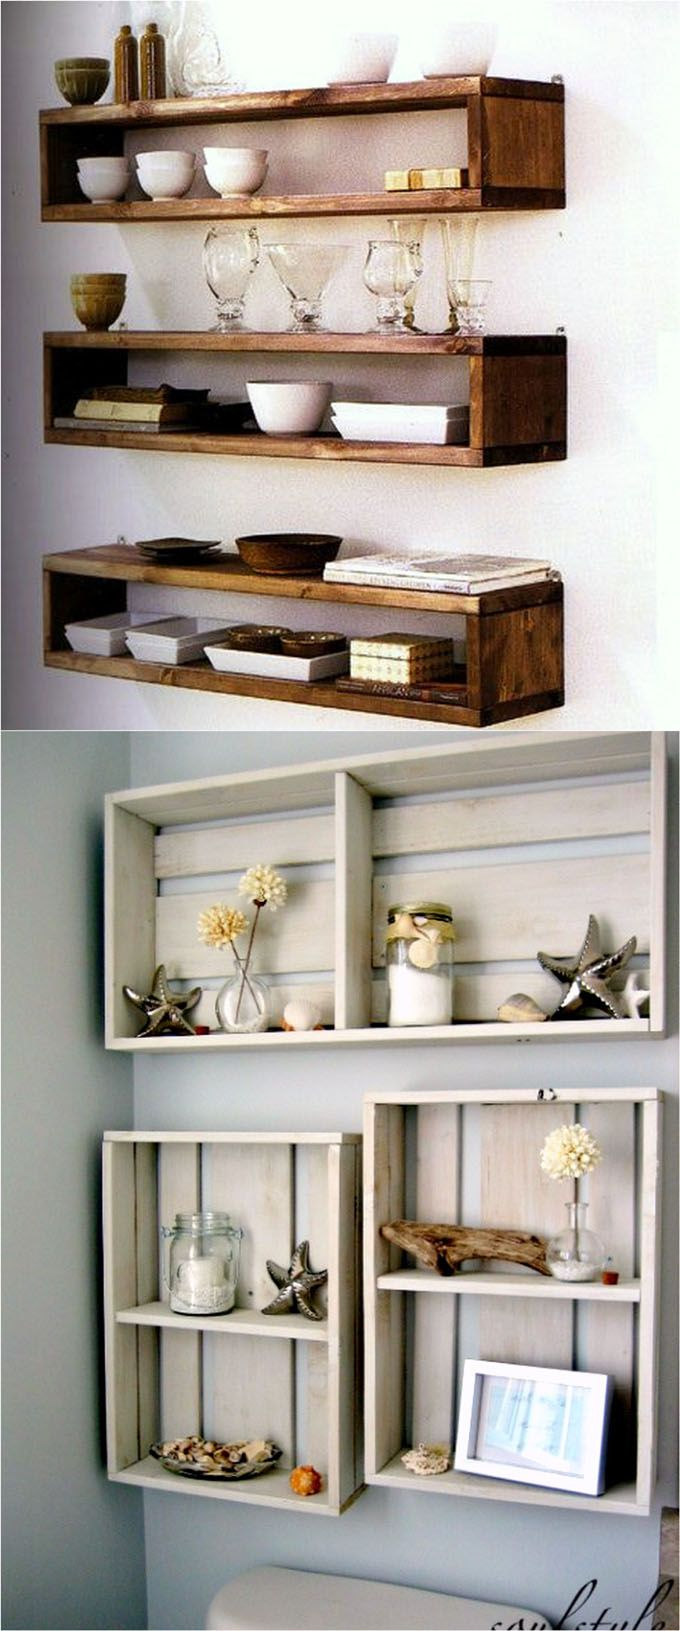 16 Easy and Stylish DIY Floating Shelves